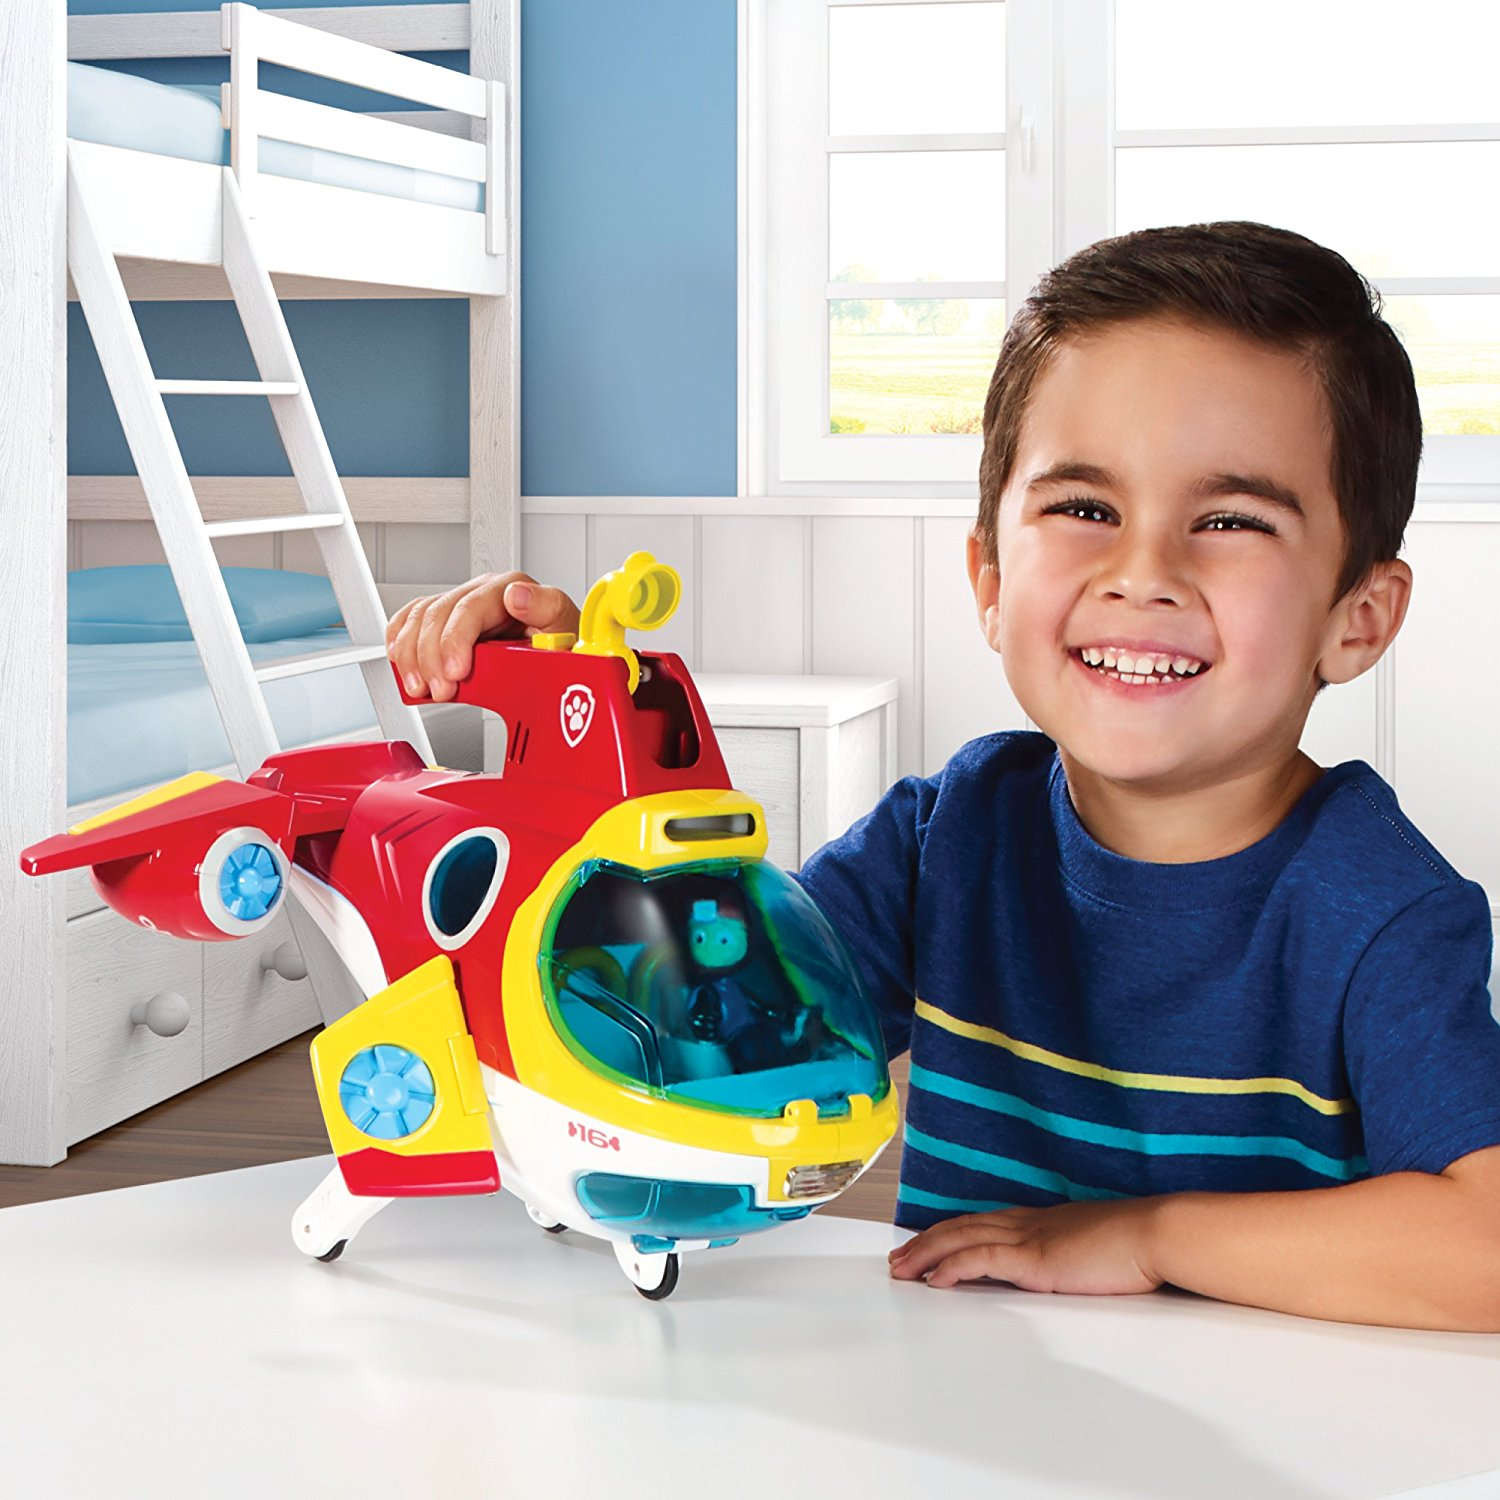 PAW Patrol Sub Patroller Transforming Vehicle – $22.99! Best Price!